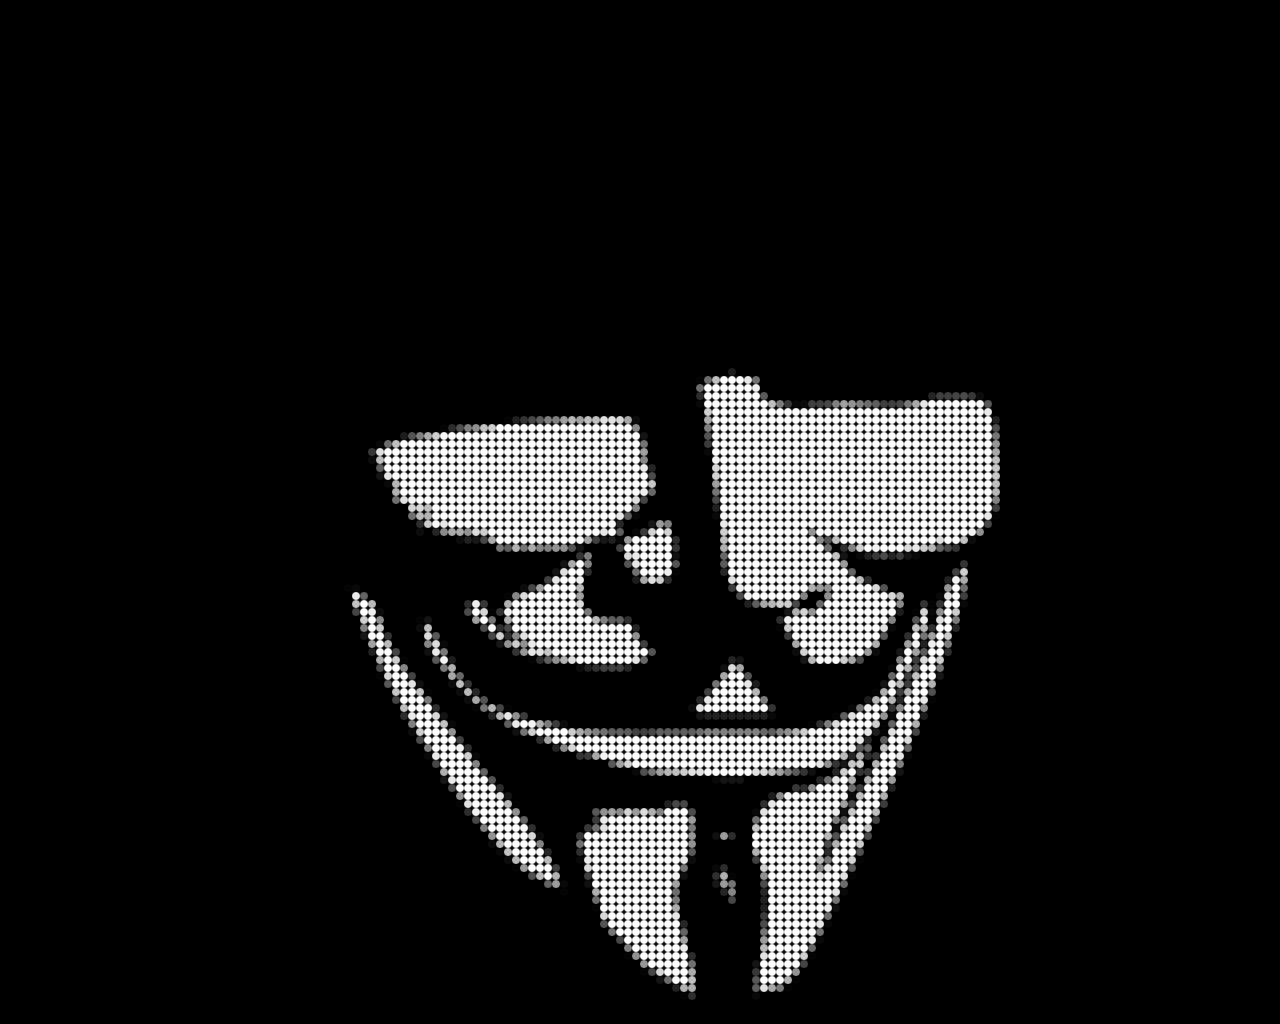 V for Vendetta - V for Vendetta Wallpaper (13512443) - Fanpop